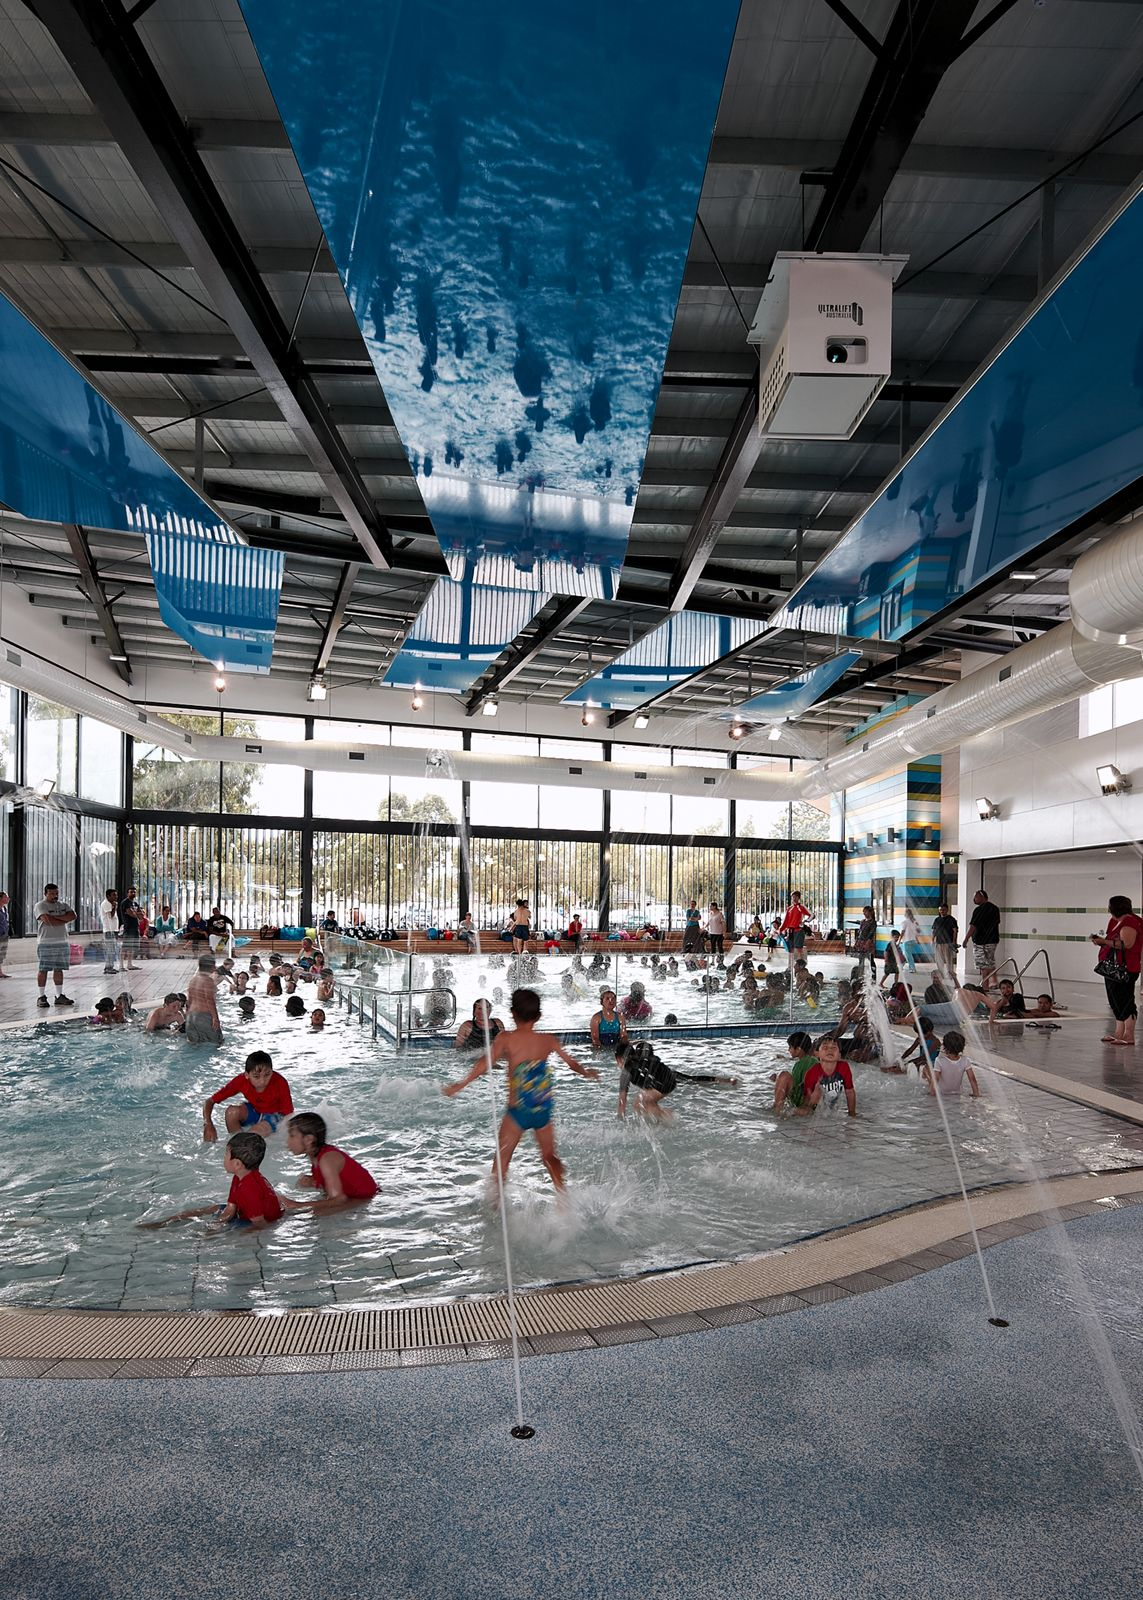 Noble park aquatic centre by suters arquitects in victoria for Piscine sourceane